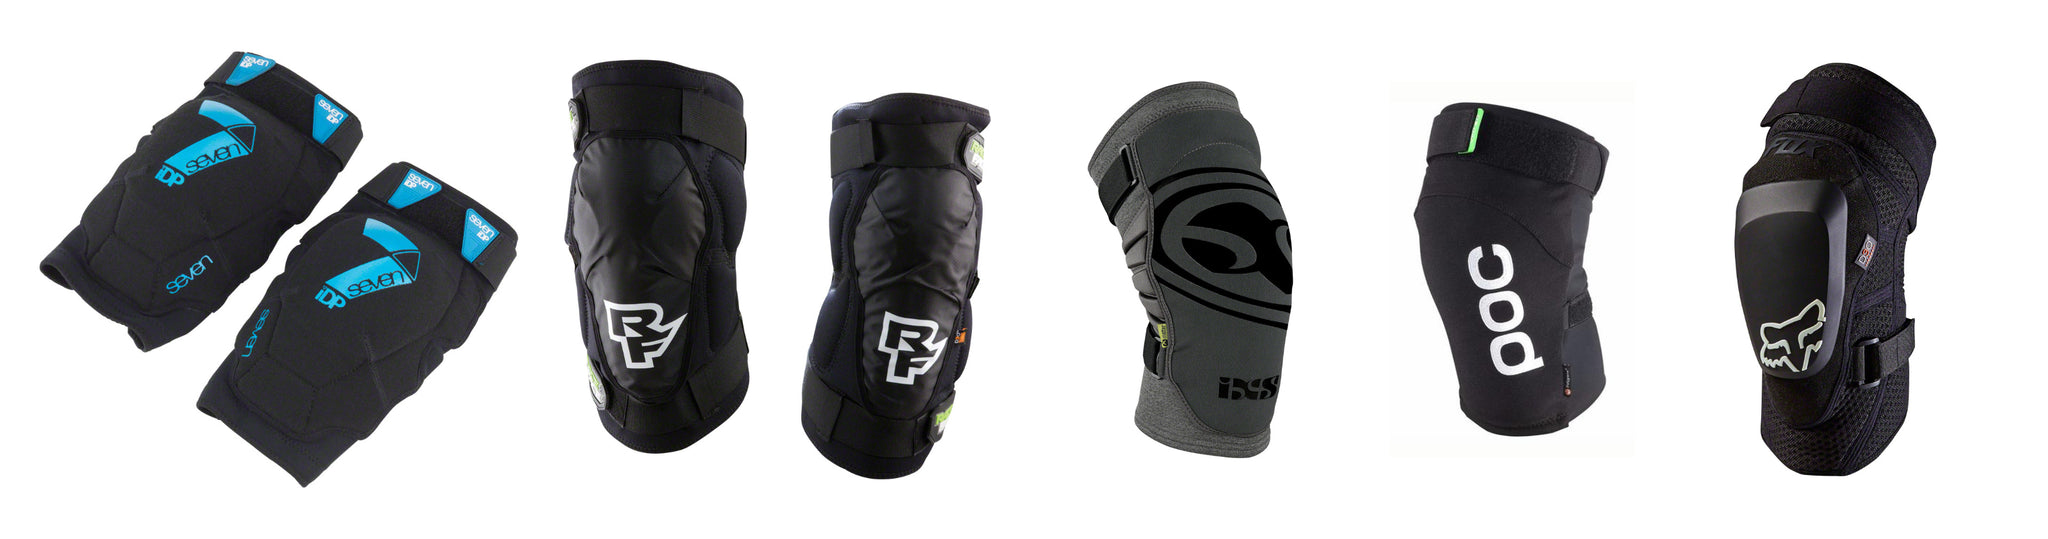 Best heavy duty max protection mountain bike knee pads